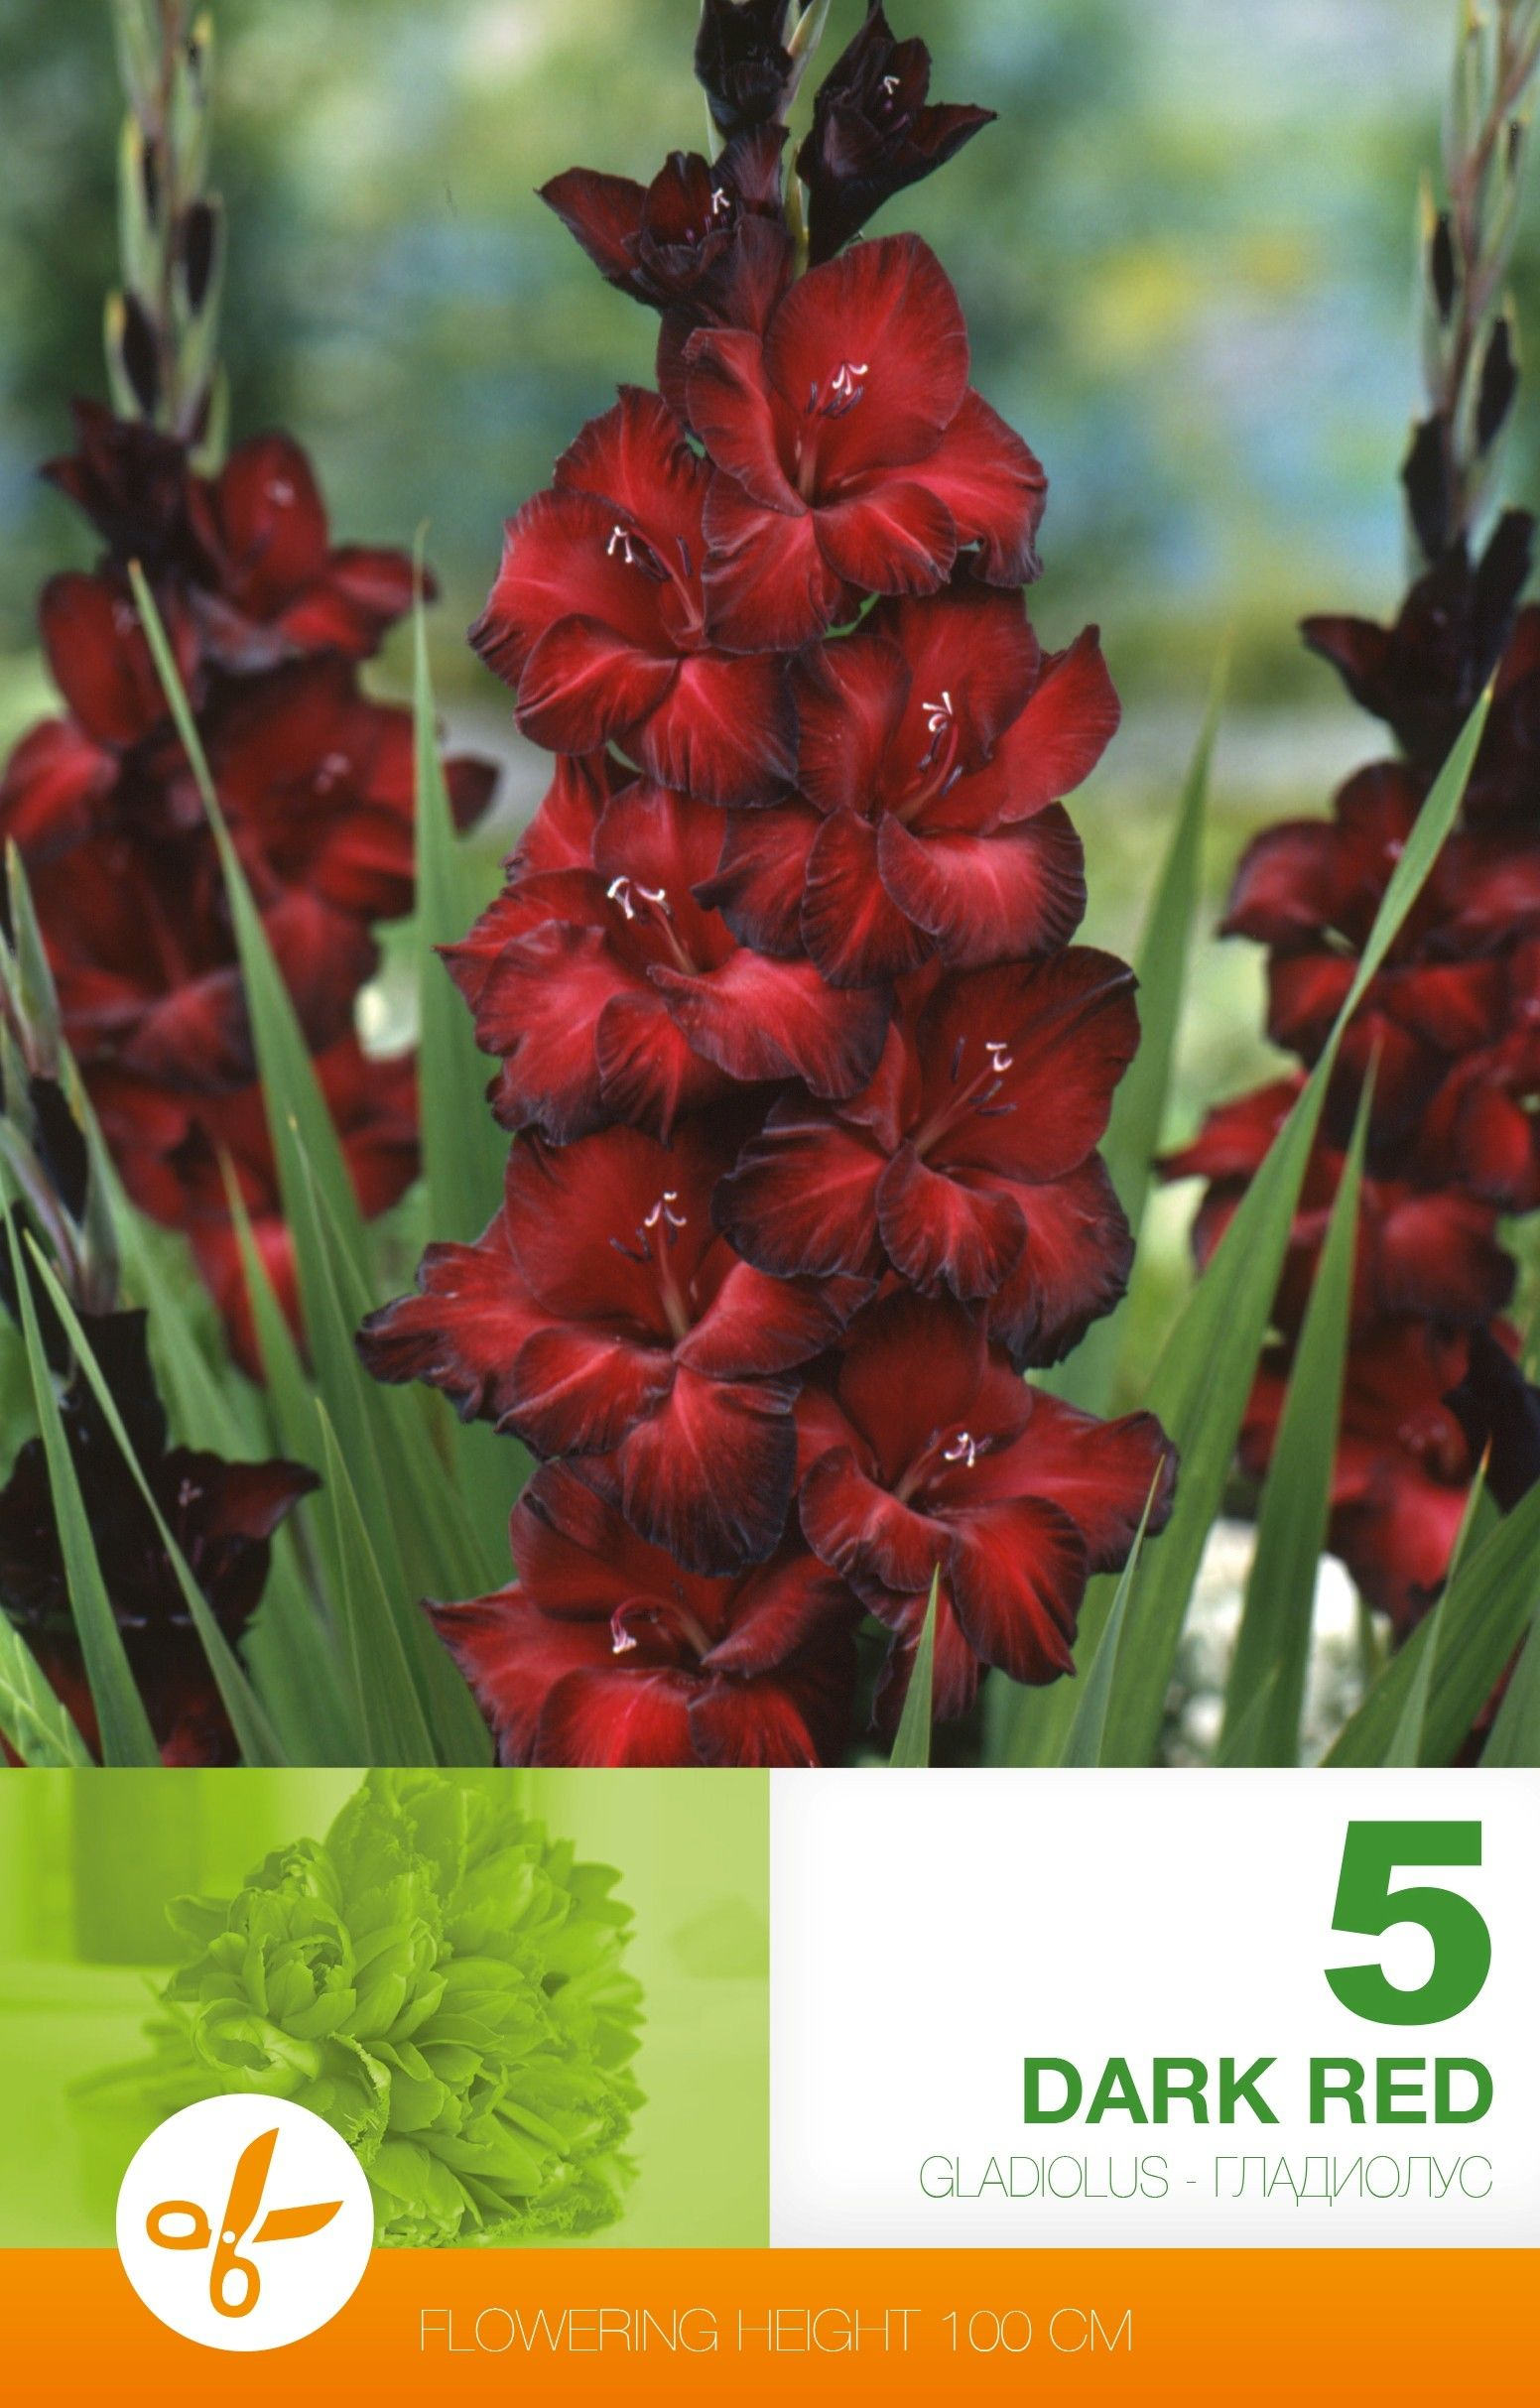 Gladiole bulbi Dark Red - 5 bulbi